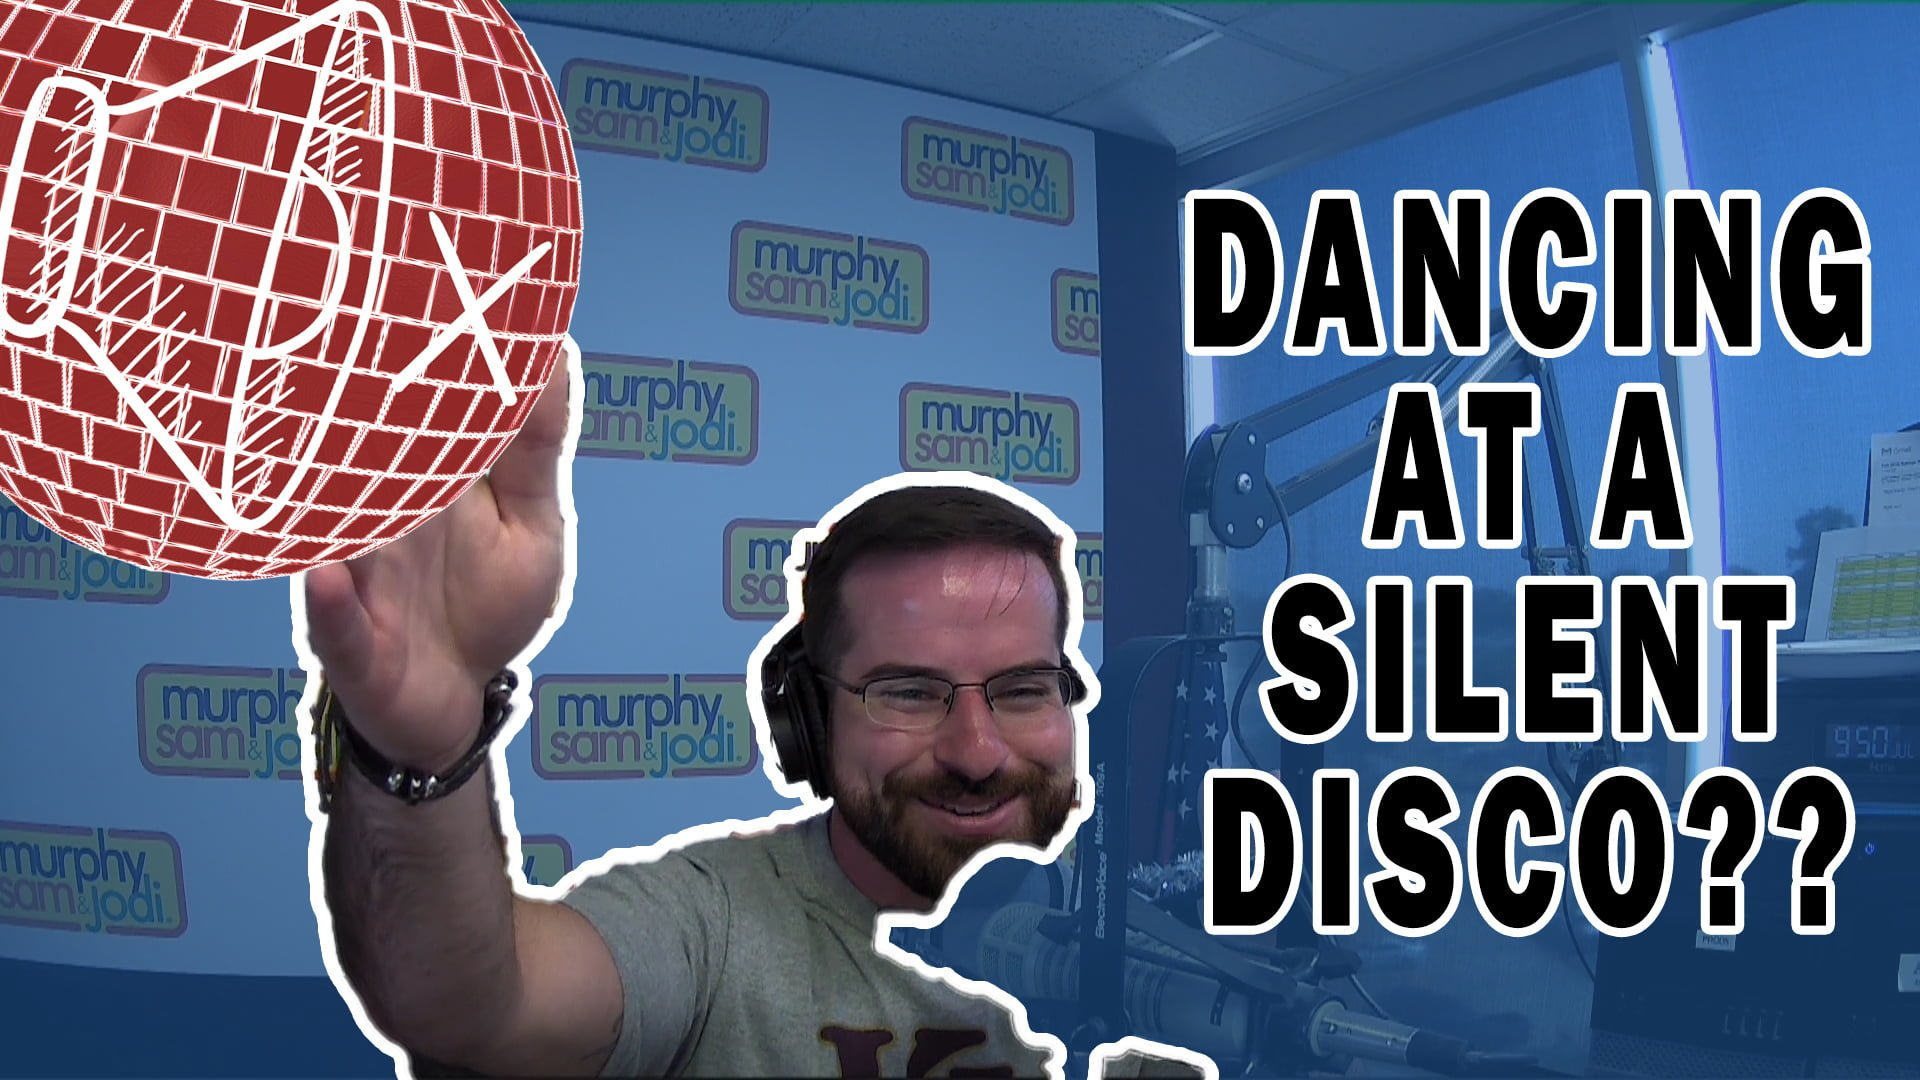 WATCH: How to Dance at a Silent Disco?